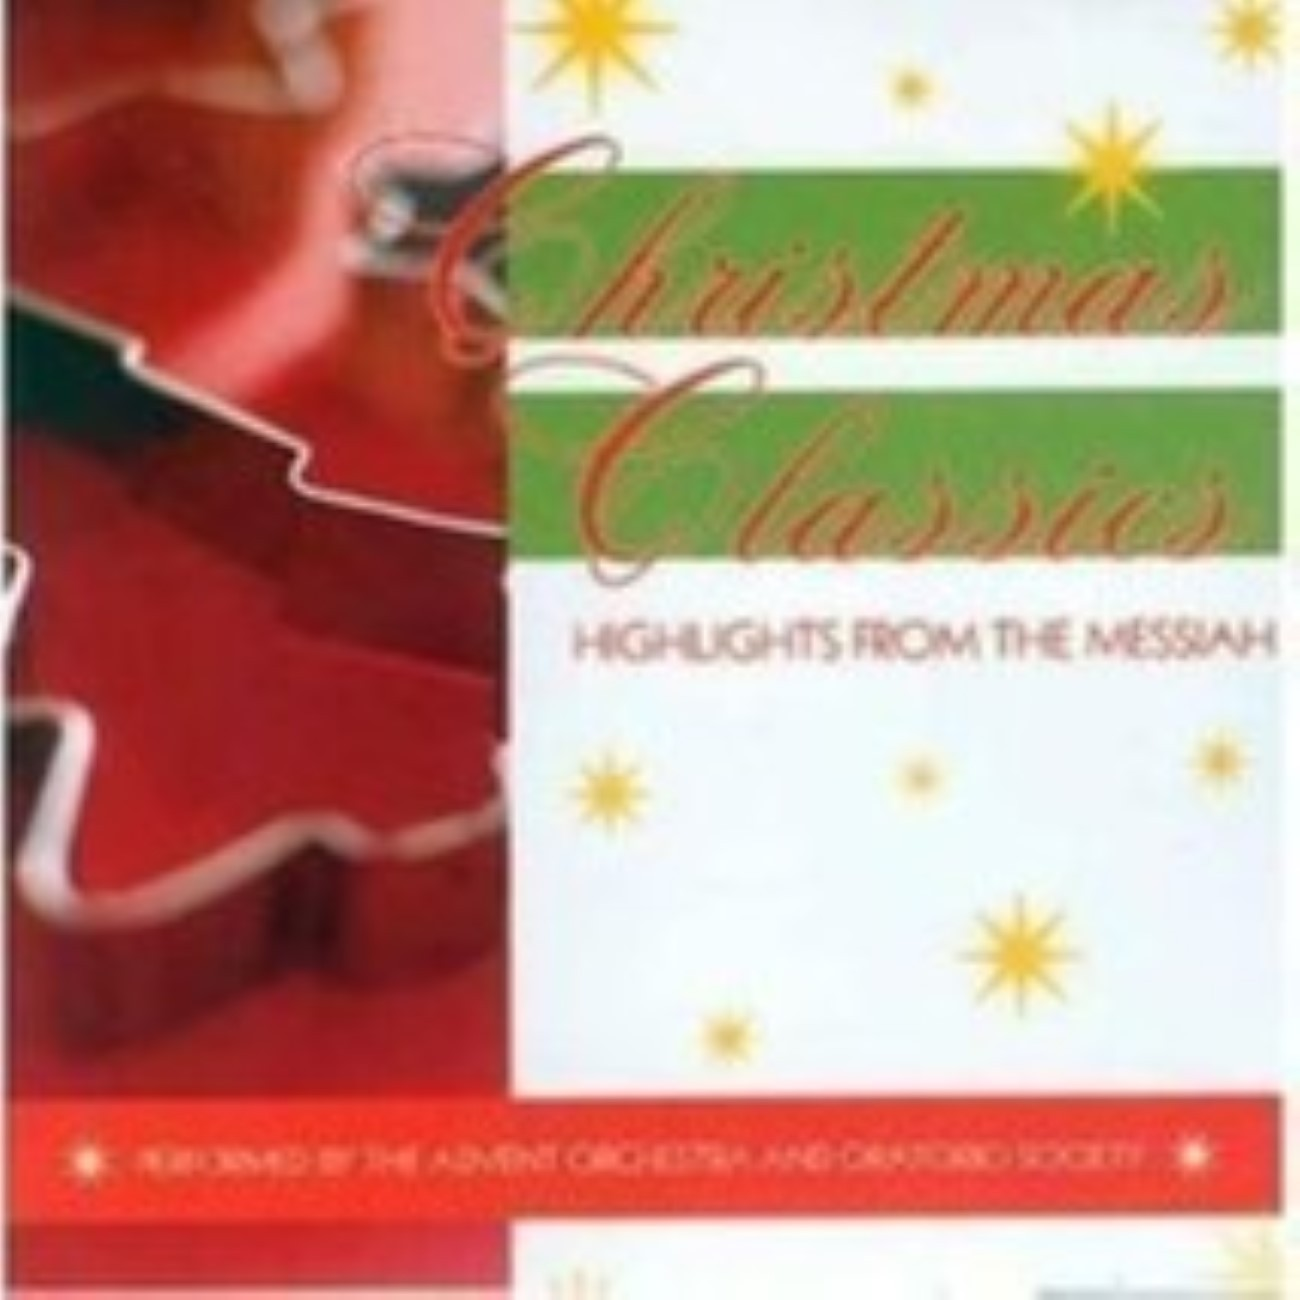 Christmas Classics: Highlights From the Messiah Cd